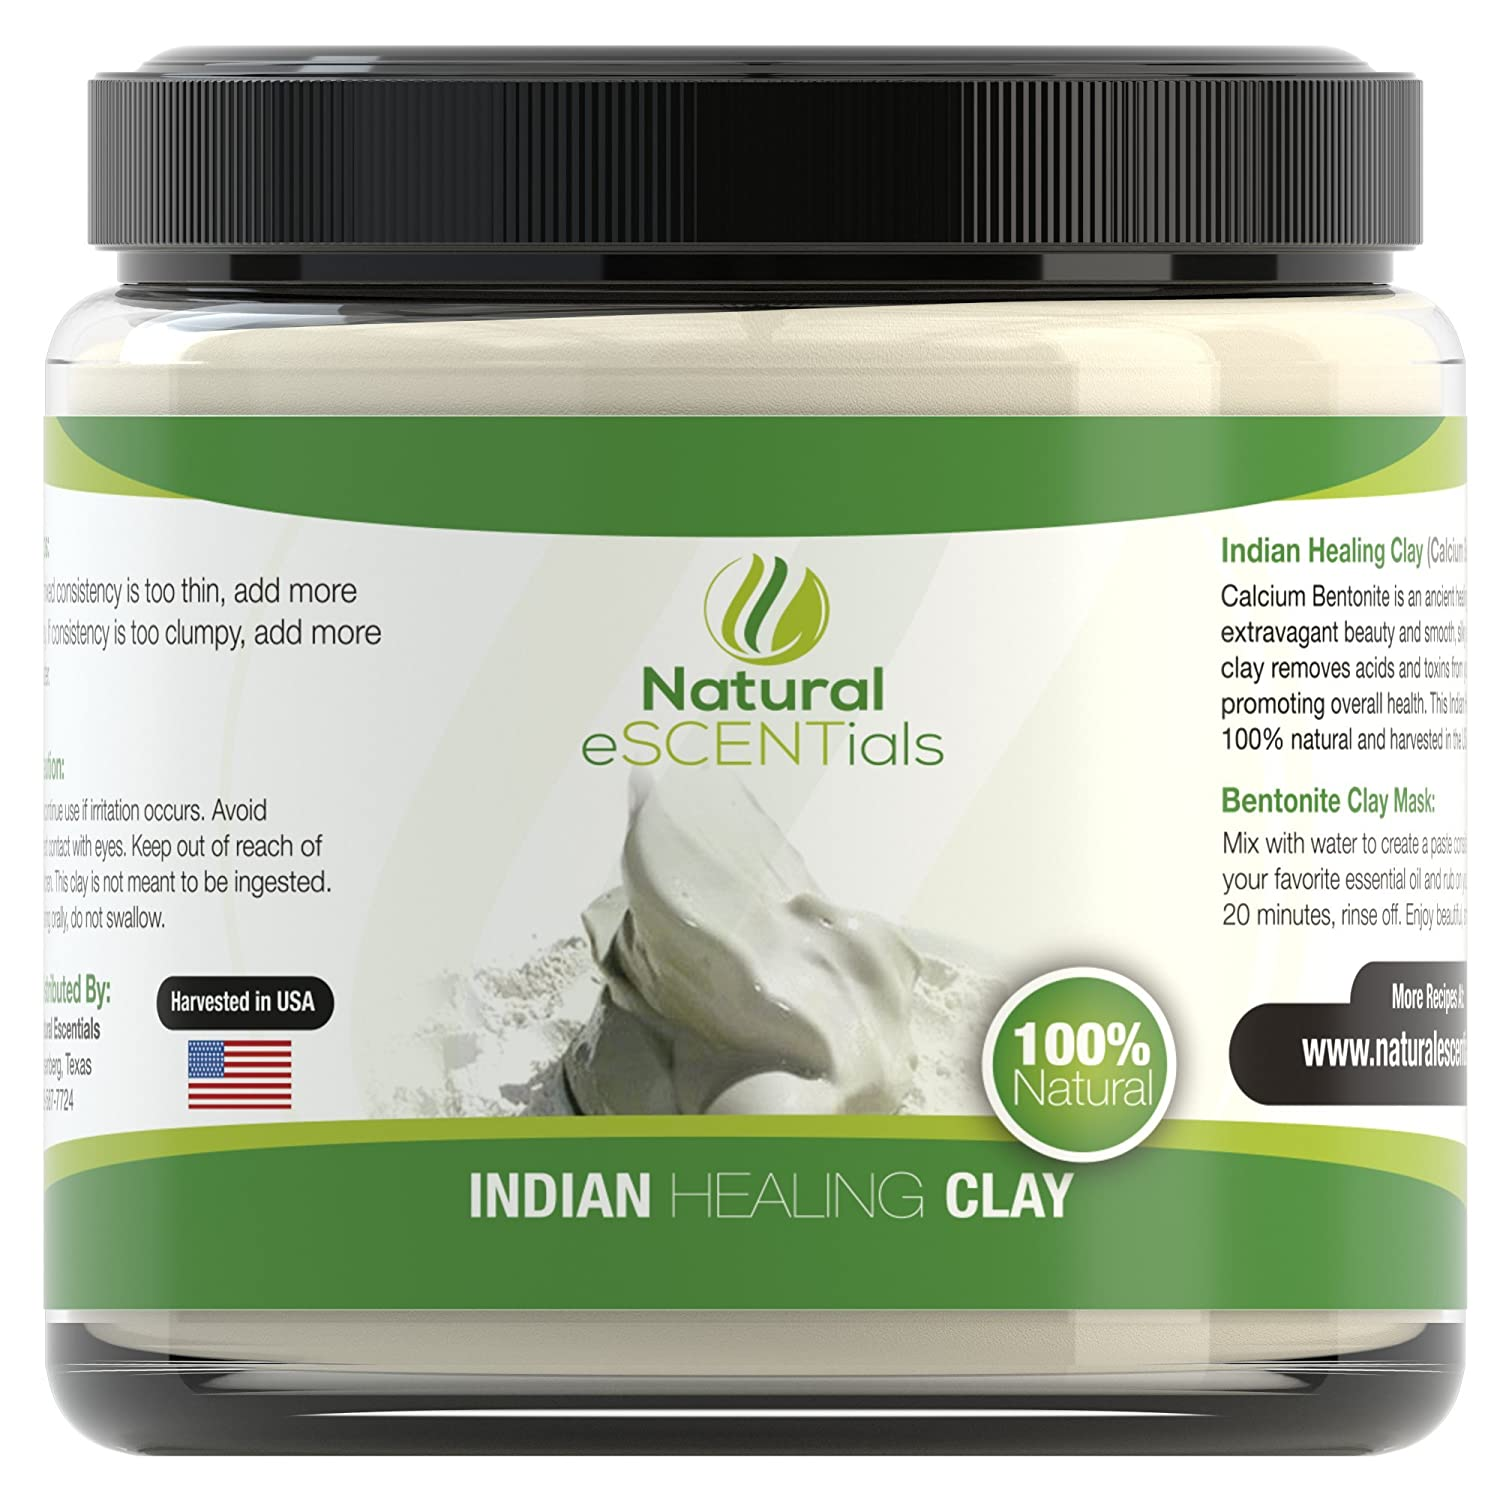 Indian Healing Clay ? HIGH QUALITY ? Pure 100% Calcium Bentonite - Finely Milled 325 Powder - Perfect for Spa Quality Masks and Scrubs - Fights Acne, Psoriasis, Oily Skin, and Skin Blemishes - Revitalizes and Promotes Natural, Healthy Skin - Psoriasis No Risk Satisfaction Guarantee (1lb)